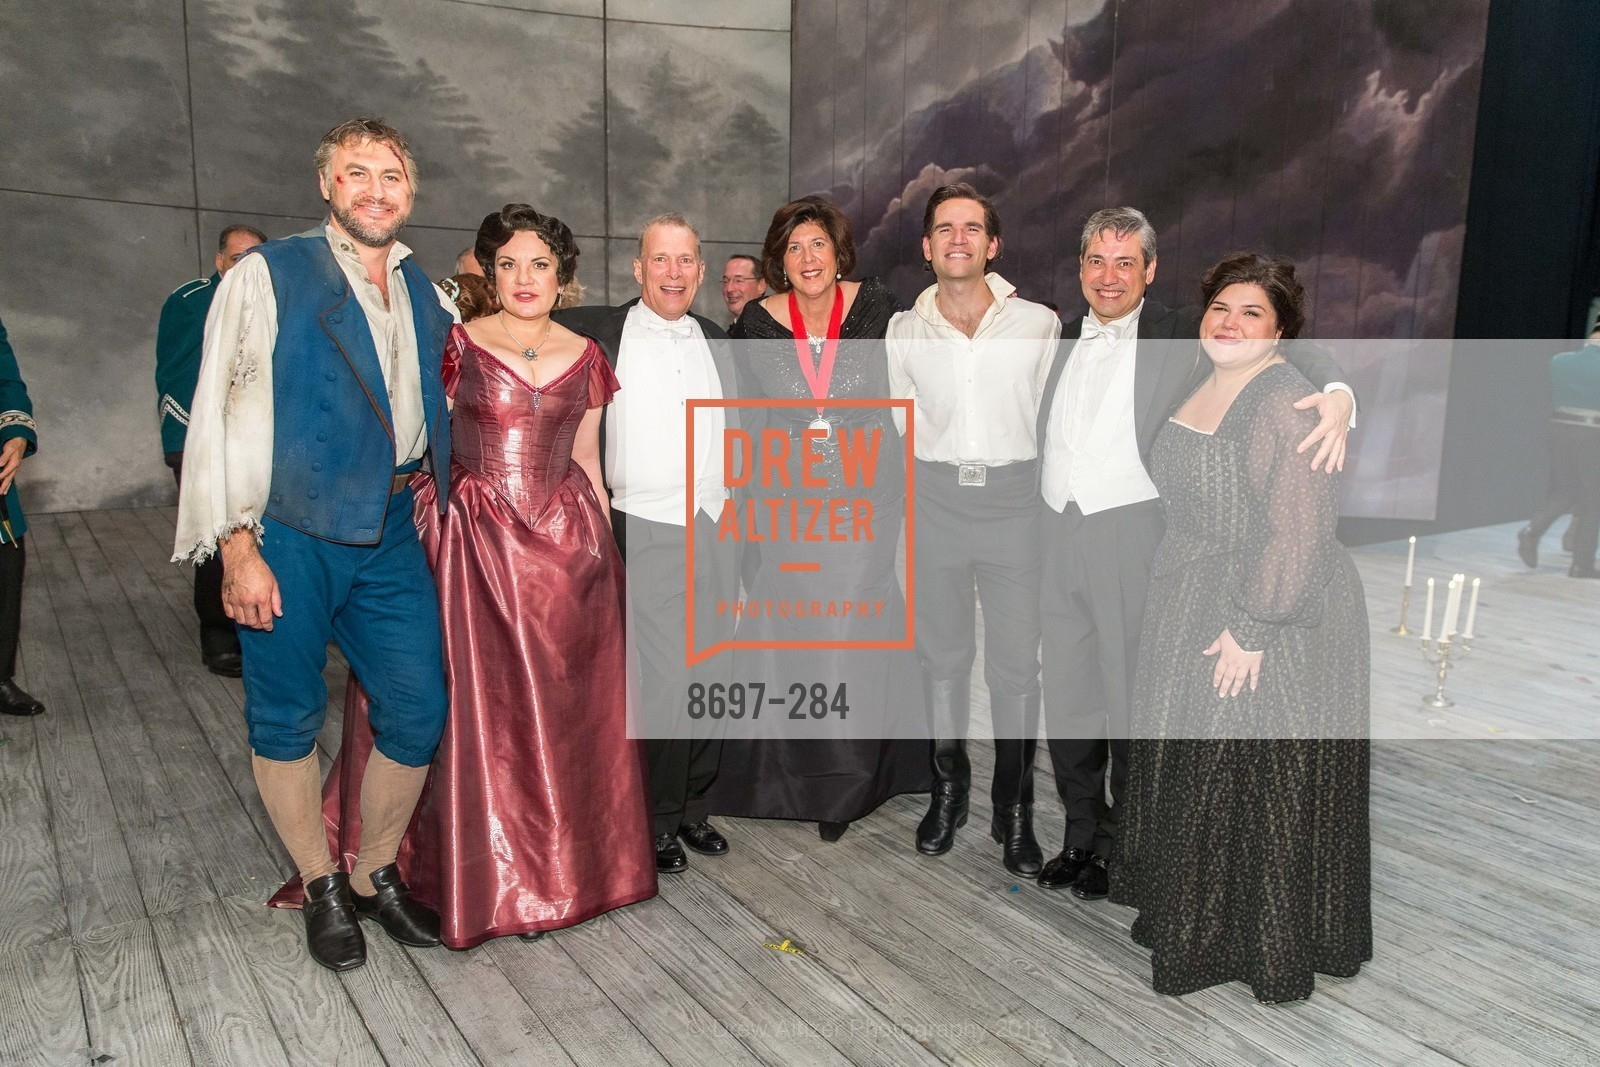 Vitaliy Bilyy, Ekaterina Semenchuk, David Gockley, Francesca Zambello, Michael Fabiano, Nicola Luisotti, Leah Crocetto, Opera Ball 2015: Moonlight & Music, War Memorial Opera House. 301 Van Ness Ave, September 11th, 2015,Drew Altizer, Drew Altizer Photography, full-service agency, private events, San Francisco photographer, photographer california